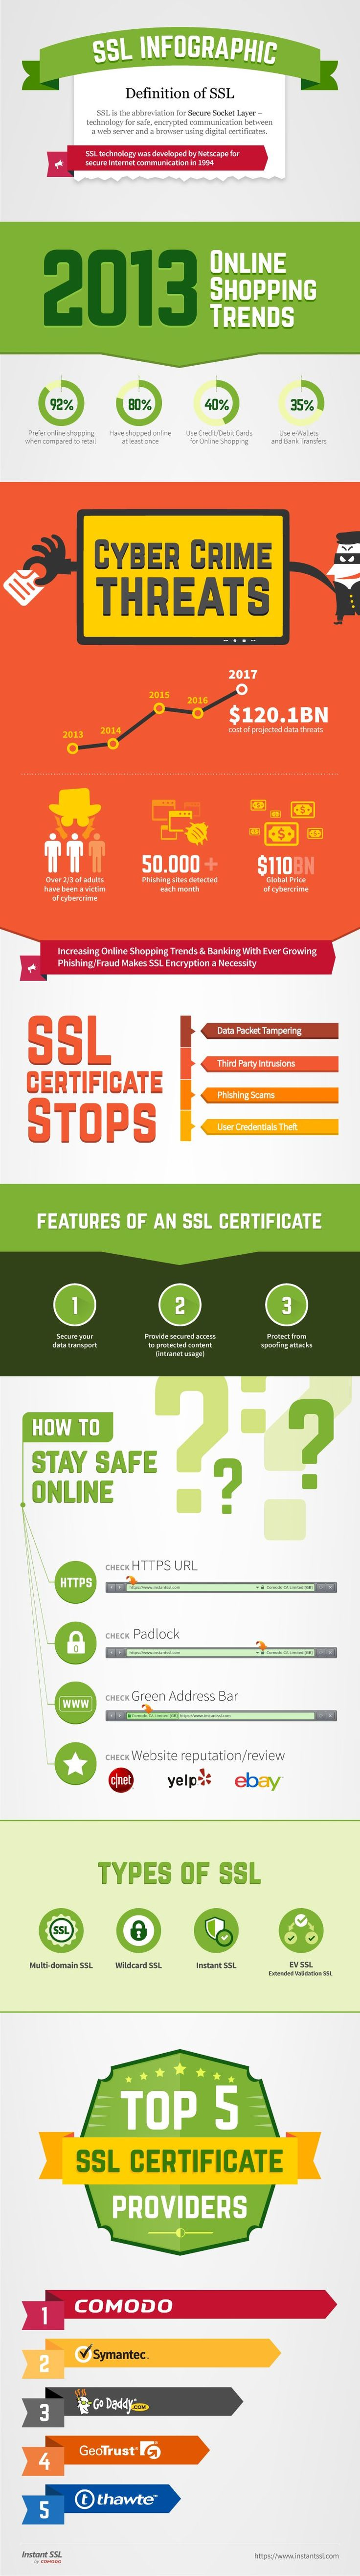 What is SSL Certificate?  SSL Certificates (   ) provide secure encrypted communications between a website and an internet browser when it activates the padlock and the https protocol.    SSL (   is the abbreviation for secure socket layer - technology for safe encrypted communication between a web server and a browser using digital certificates.